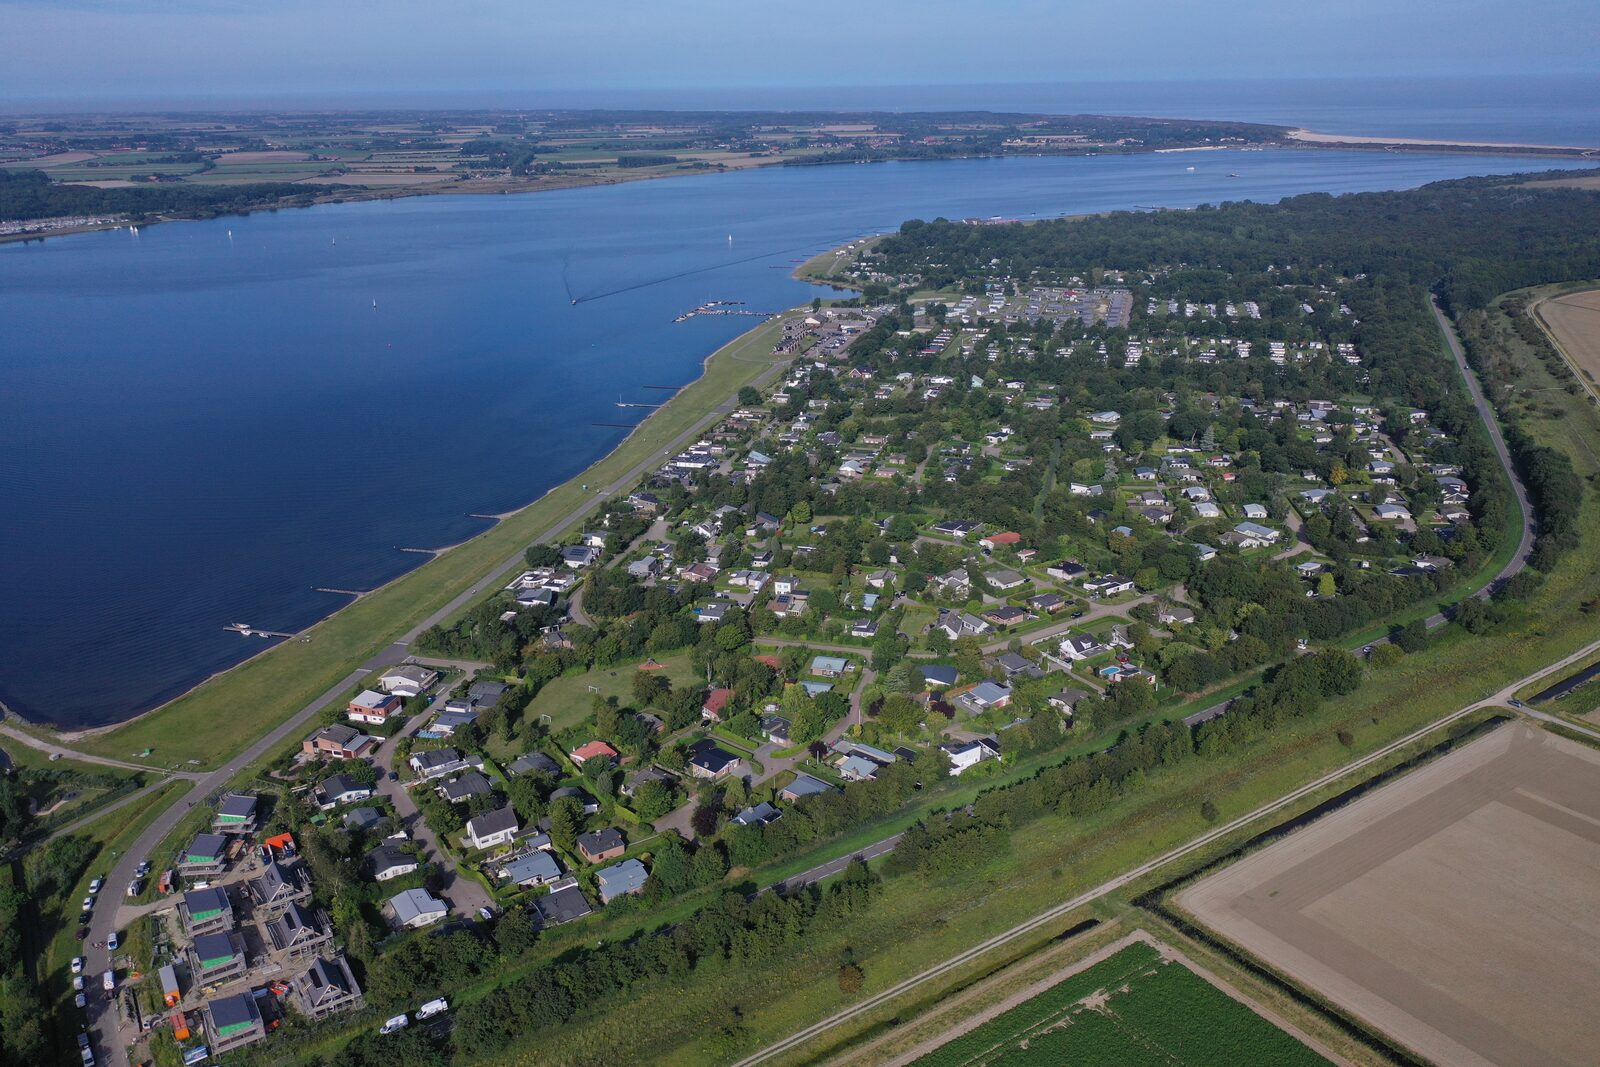 Holiday homes Ruiterplaat Vakanties in Zeeland on Veerse meer